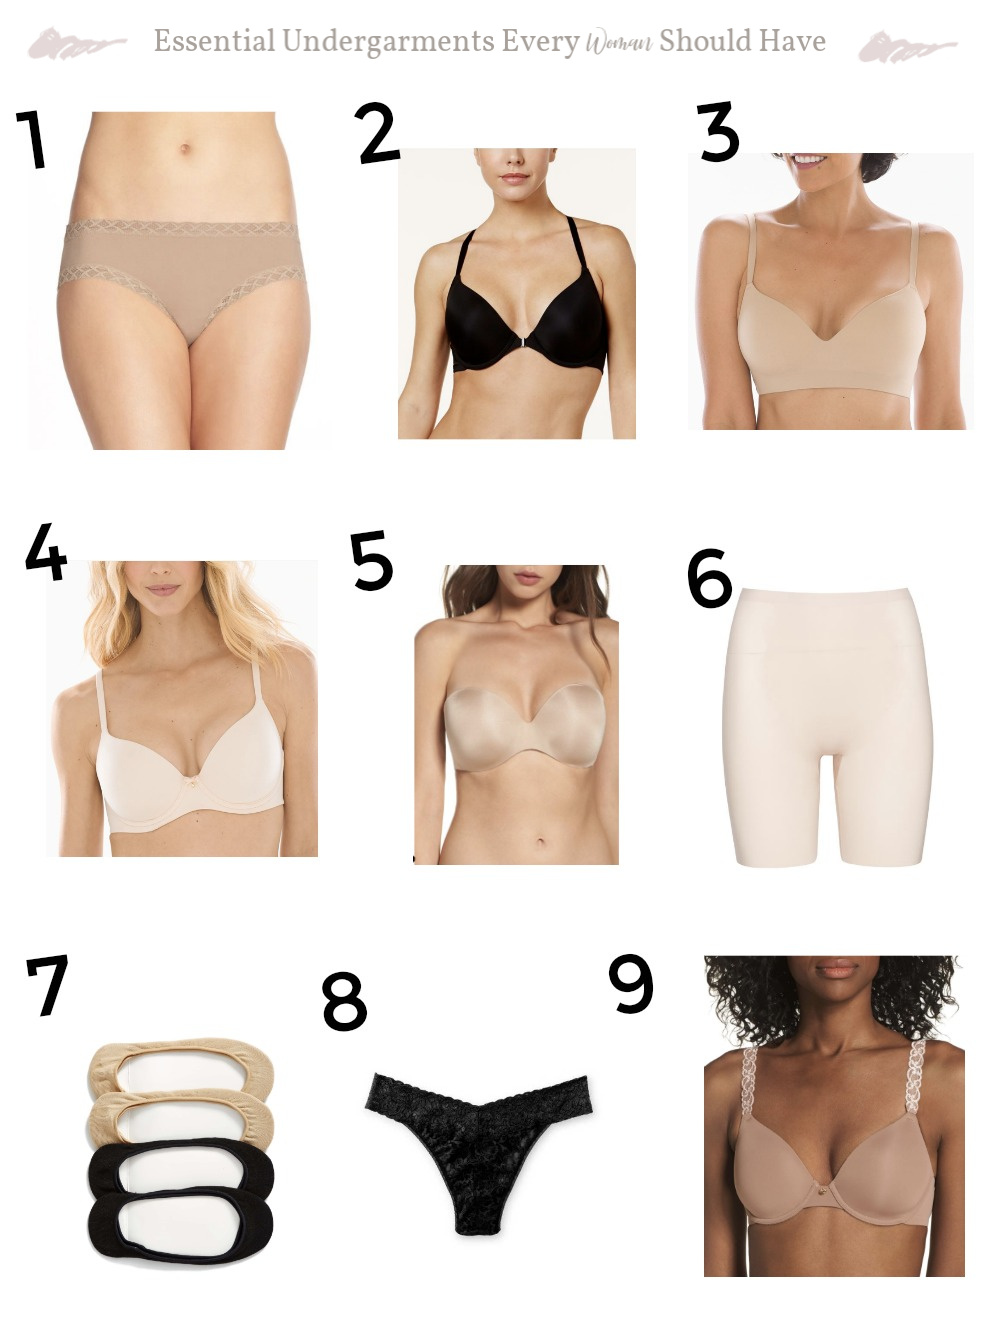 Essential Undergarments Every Woman Should Have